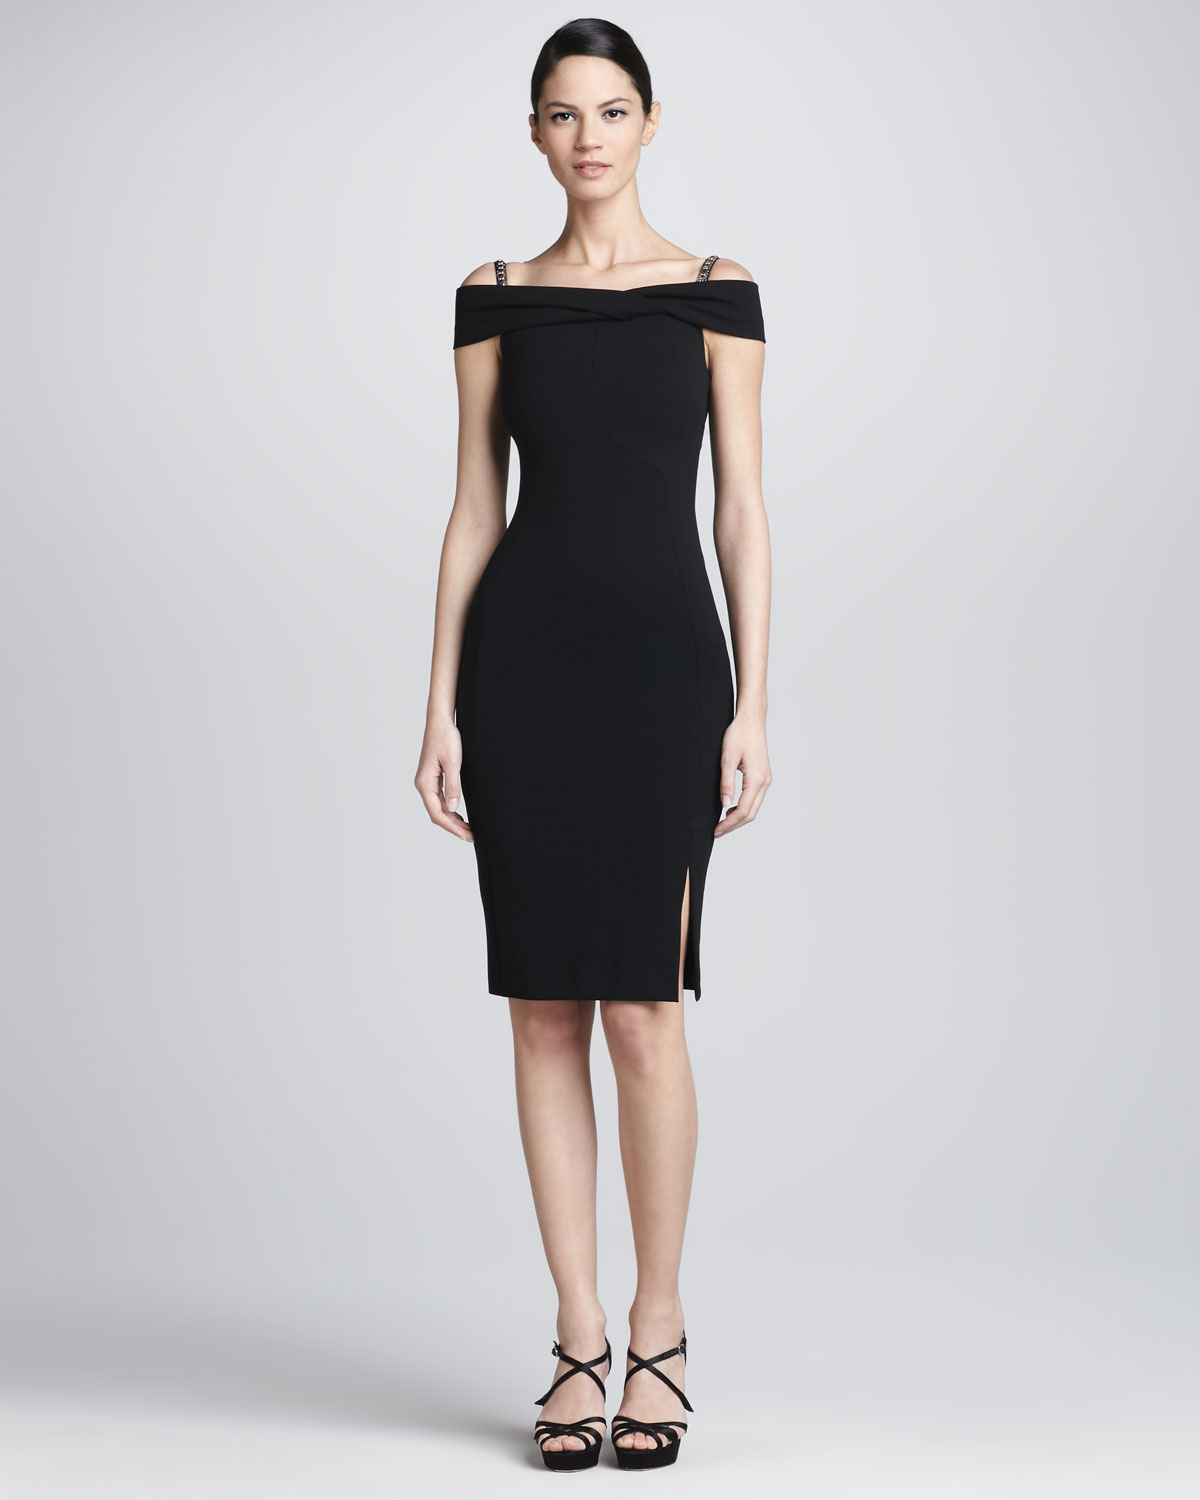 a23bacc5d2a7 Lyst - Emilio Pucci Beaded Strap Off The Shoulder Dress in Black